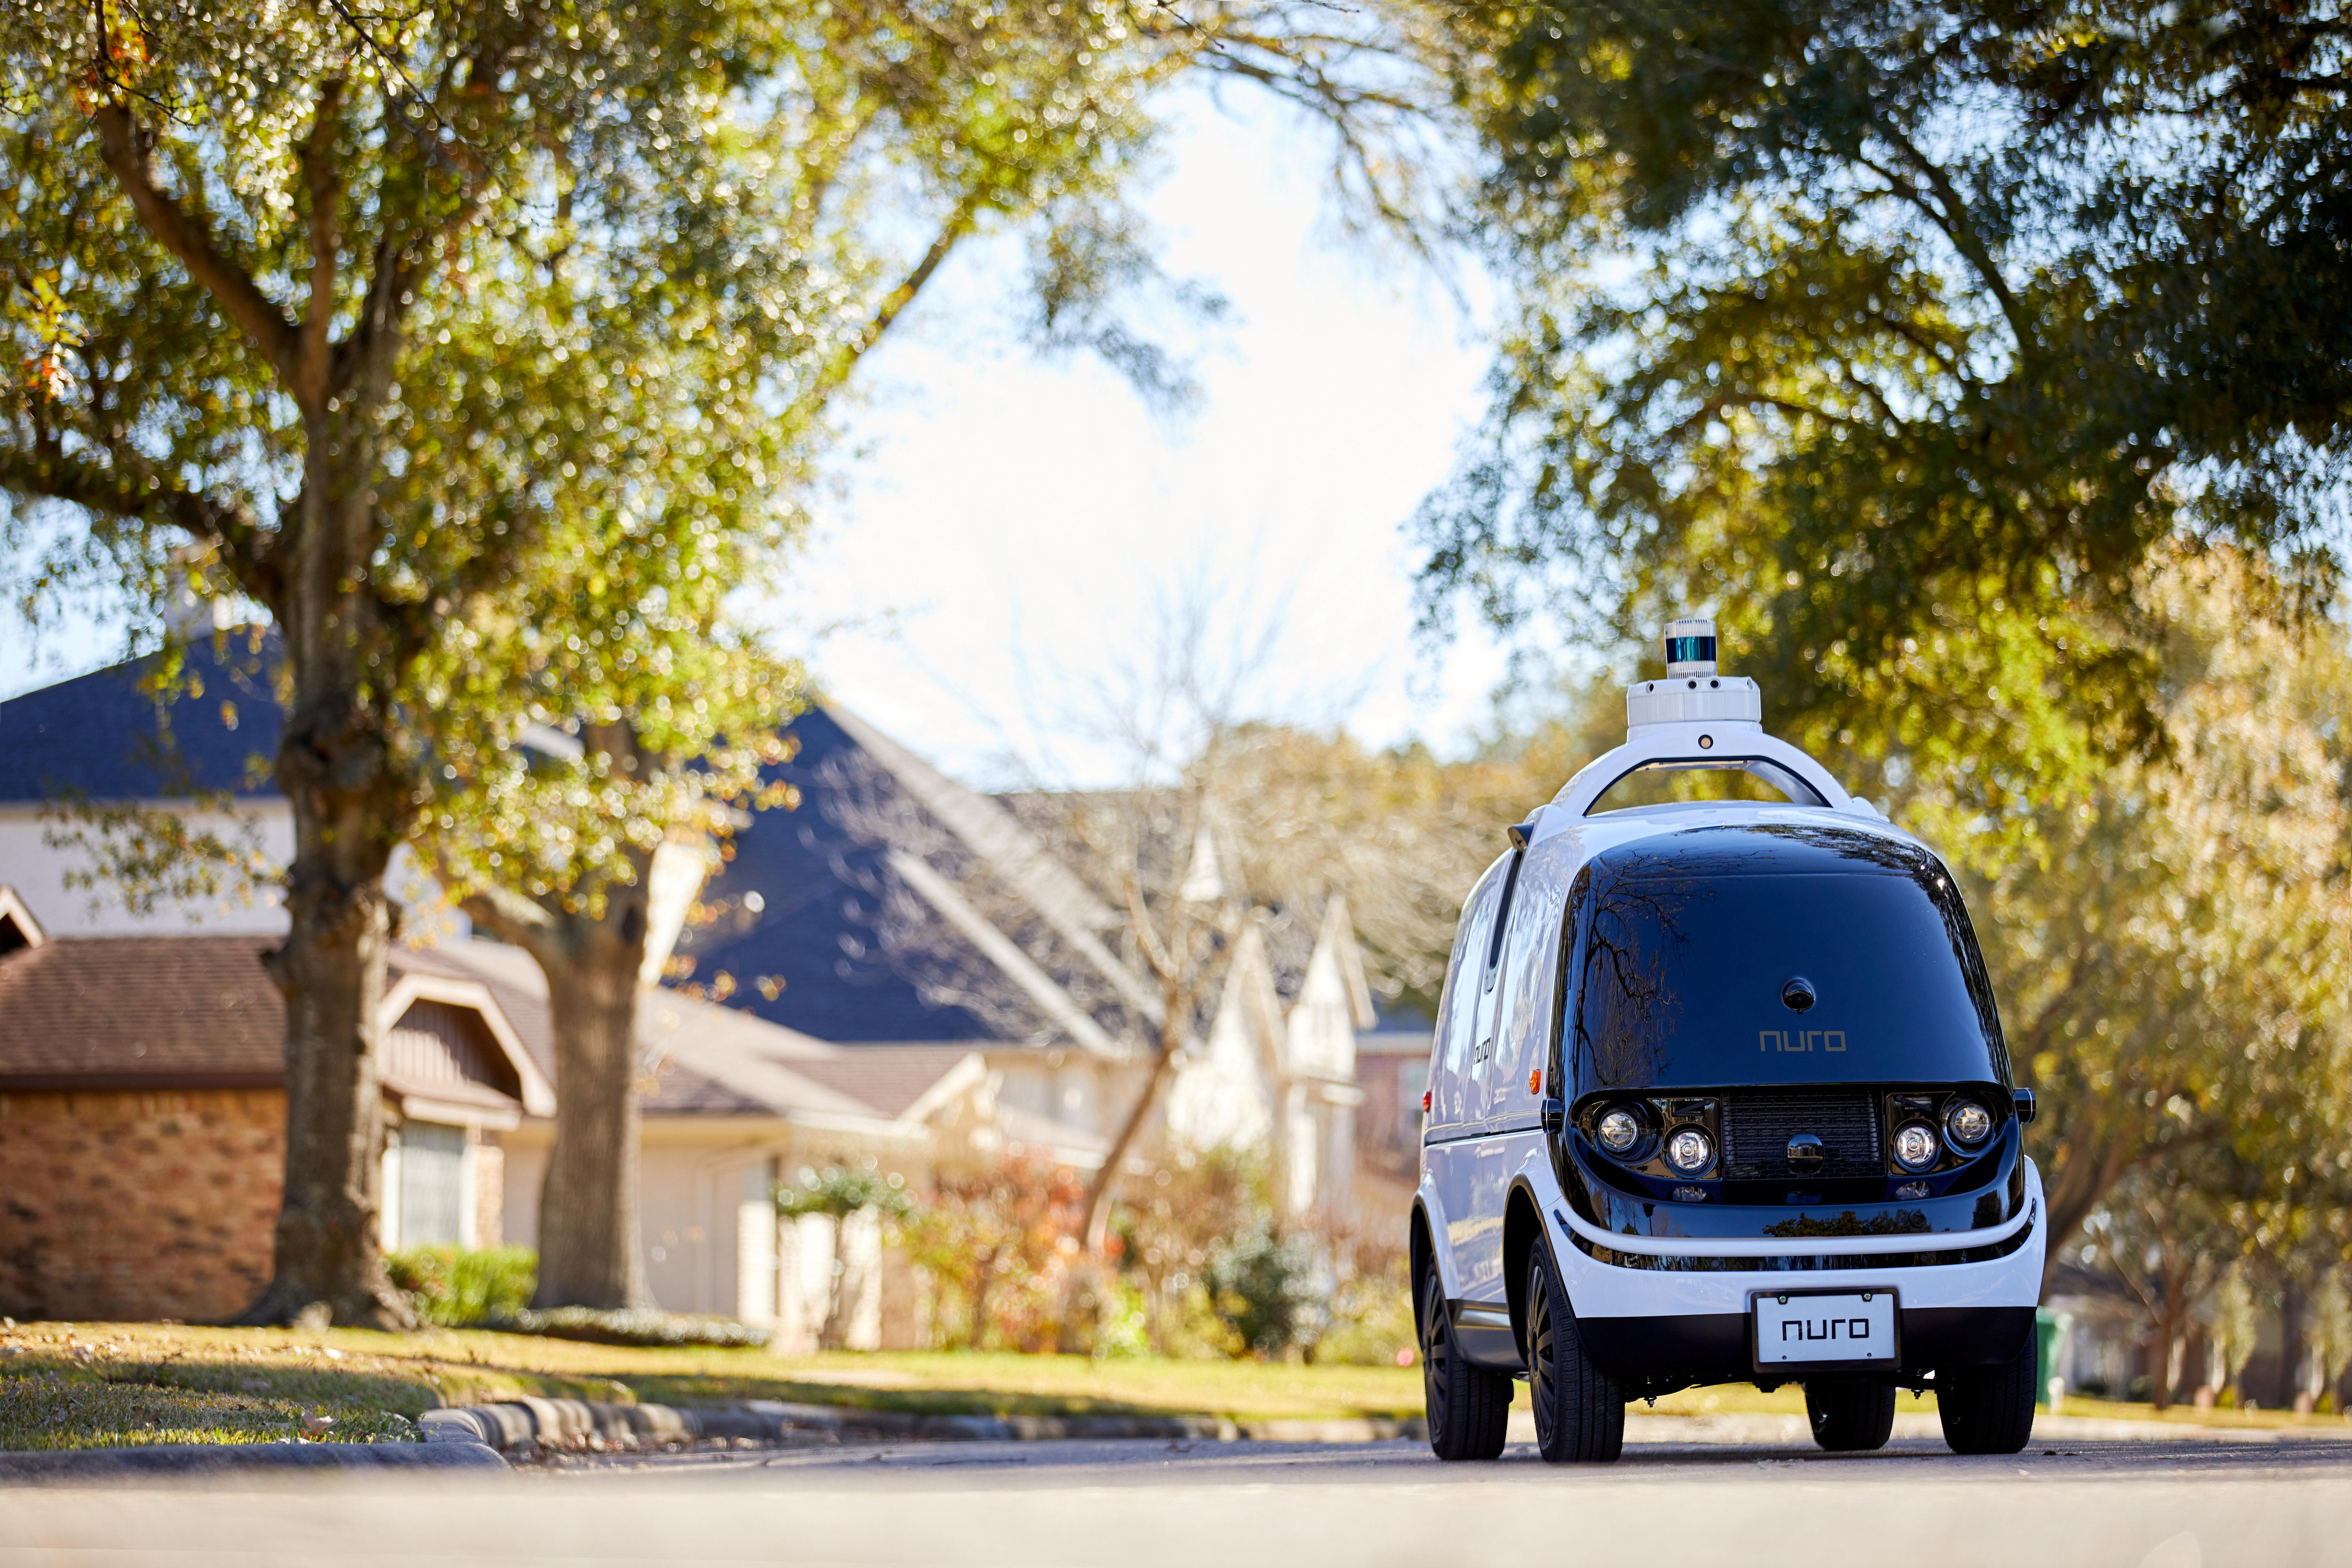 Pizza-toting robots: U.S. lets Nuro deploy driverless delivery vehicles